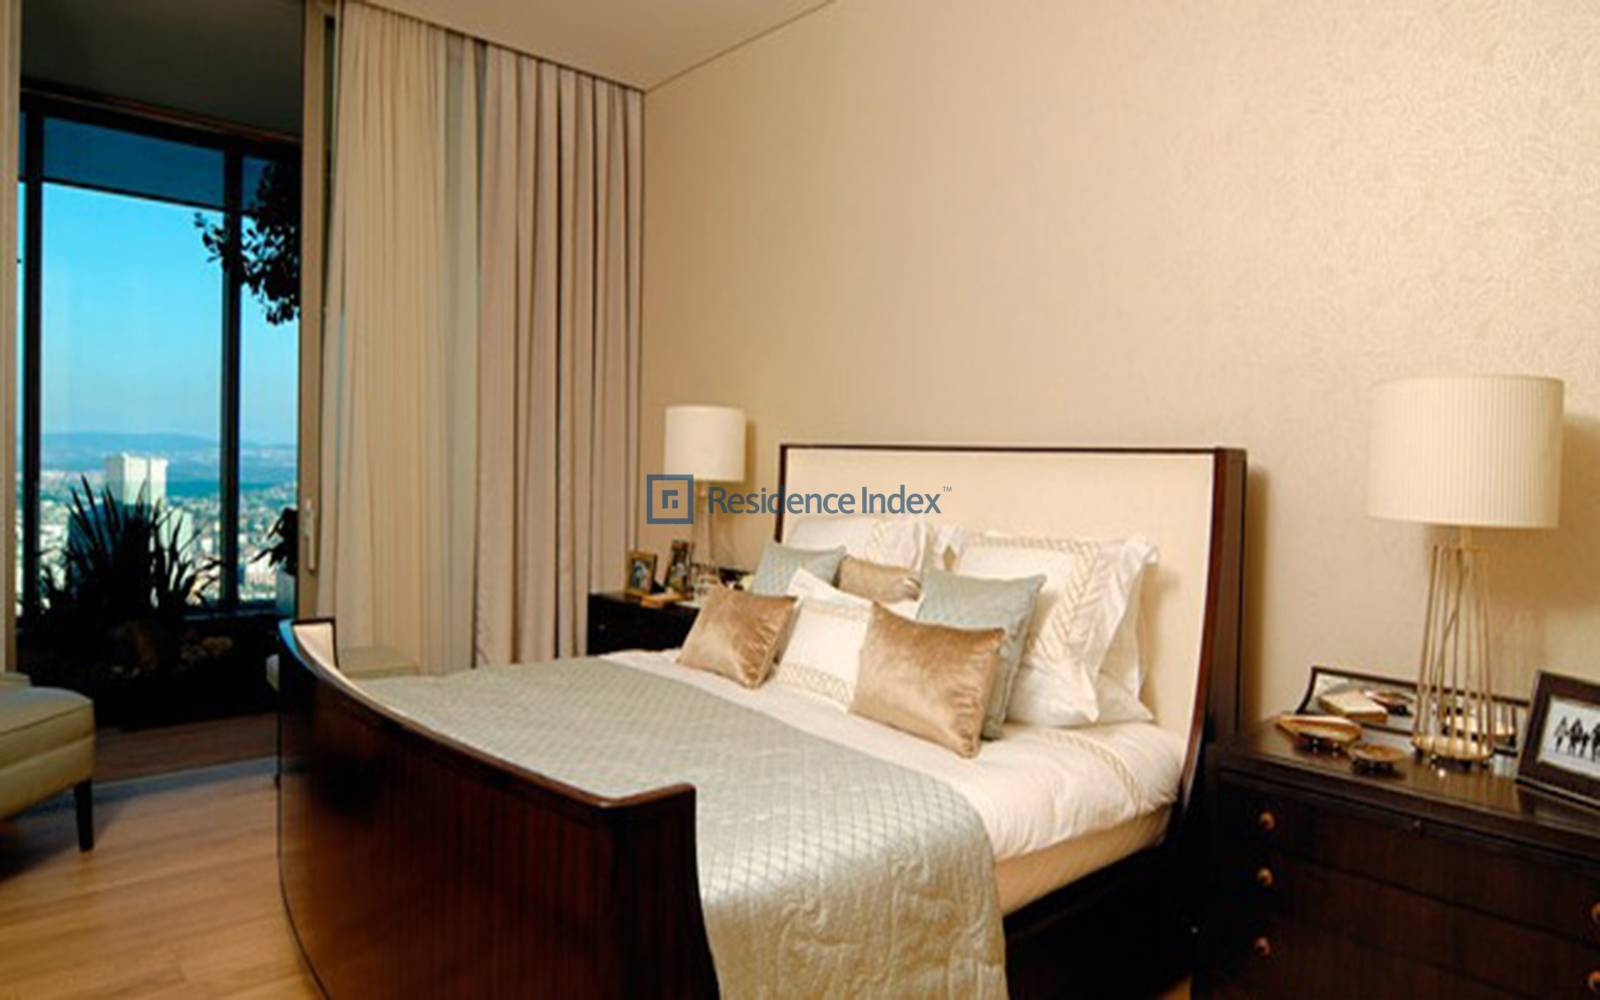 Sapphire Residence - Sapphire Residence 1 +1 Opportunity Apartment